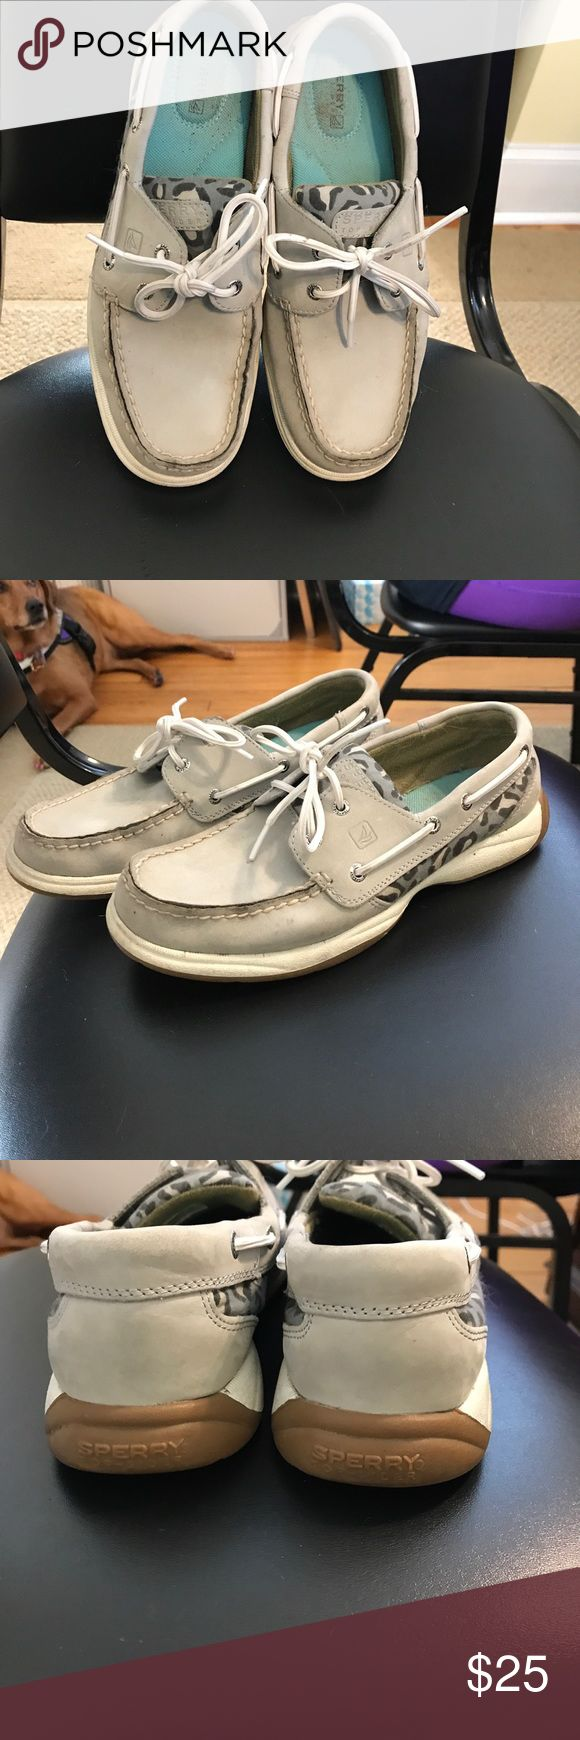 Sperry's  TopSiders Re-posh--  Light gray Sperry TopSiders with Cheetah print on each side.  Hardly worn, look almost new. Just  not my color. Sperry Top-Sider Shoes Flats & Loafers